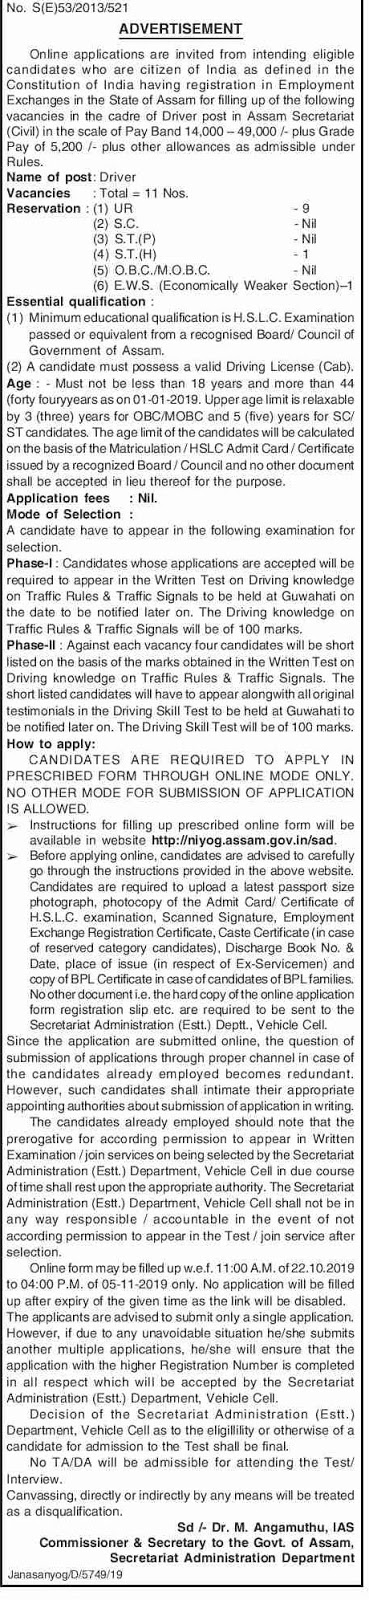 Assam Secretariat Driver Recruitment 2019 Notification